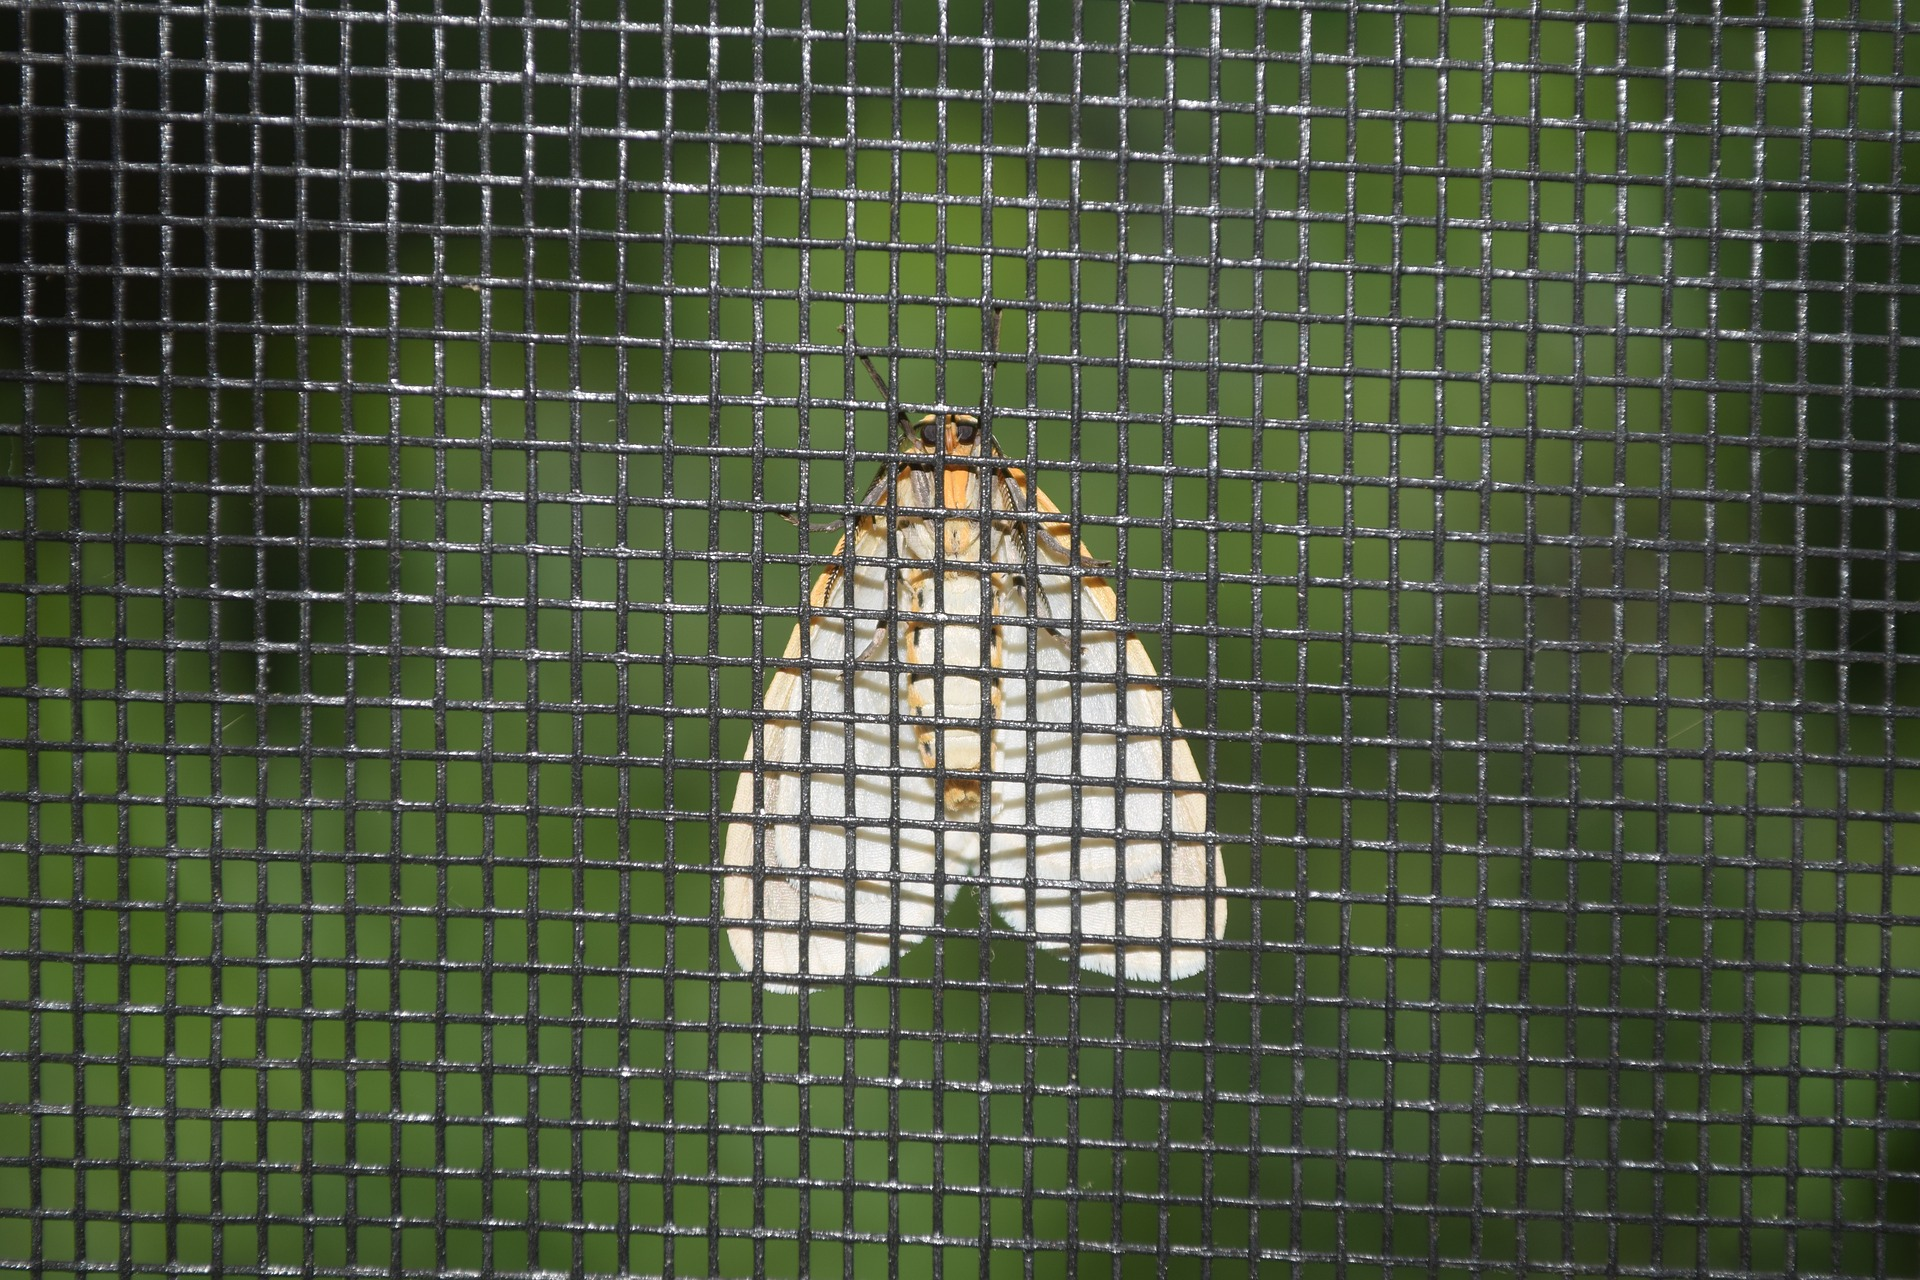 Moth on the screen